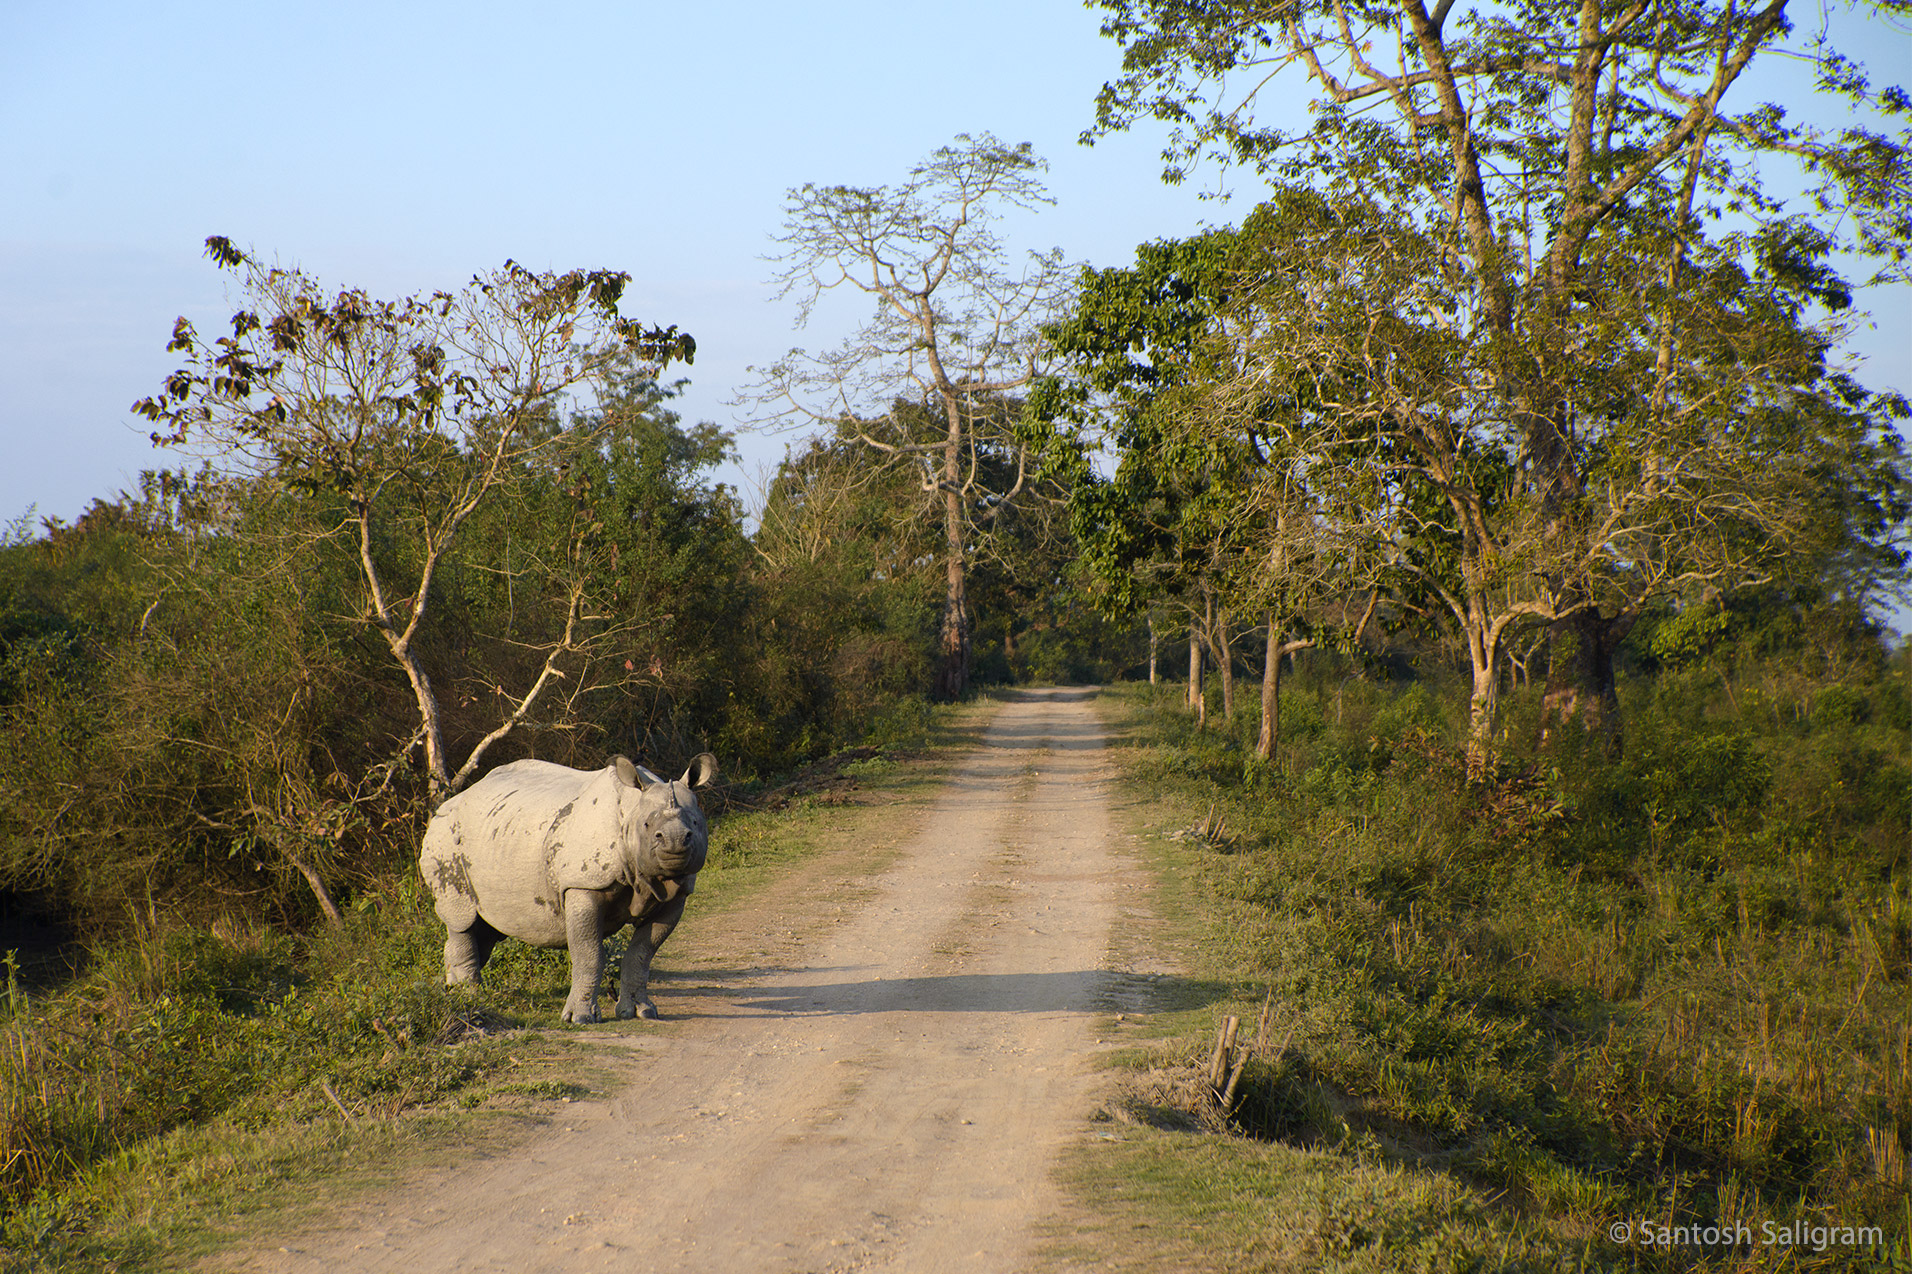 Indian One-horned Rhino, Kaziranga